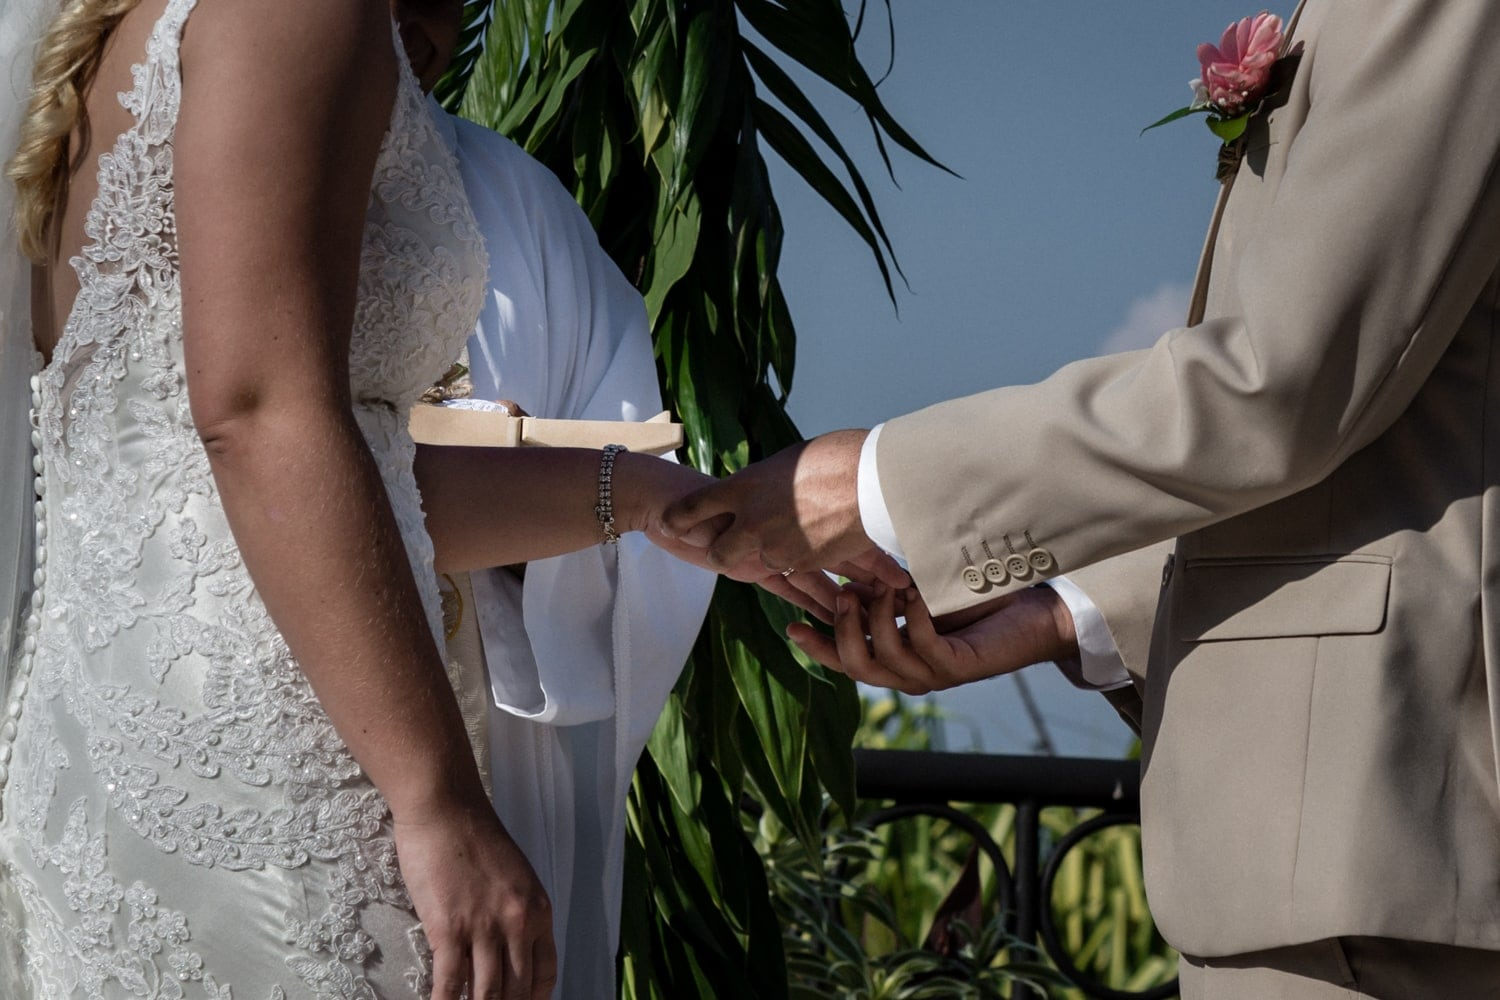 Couple ties the knot and exchanges wedding rings.